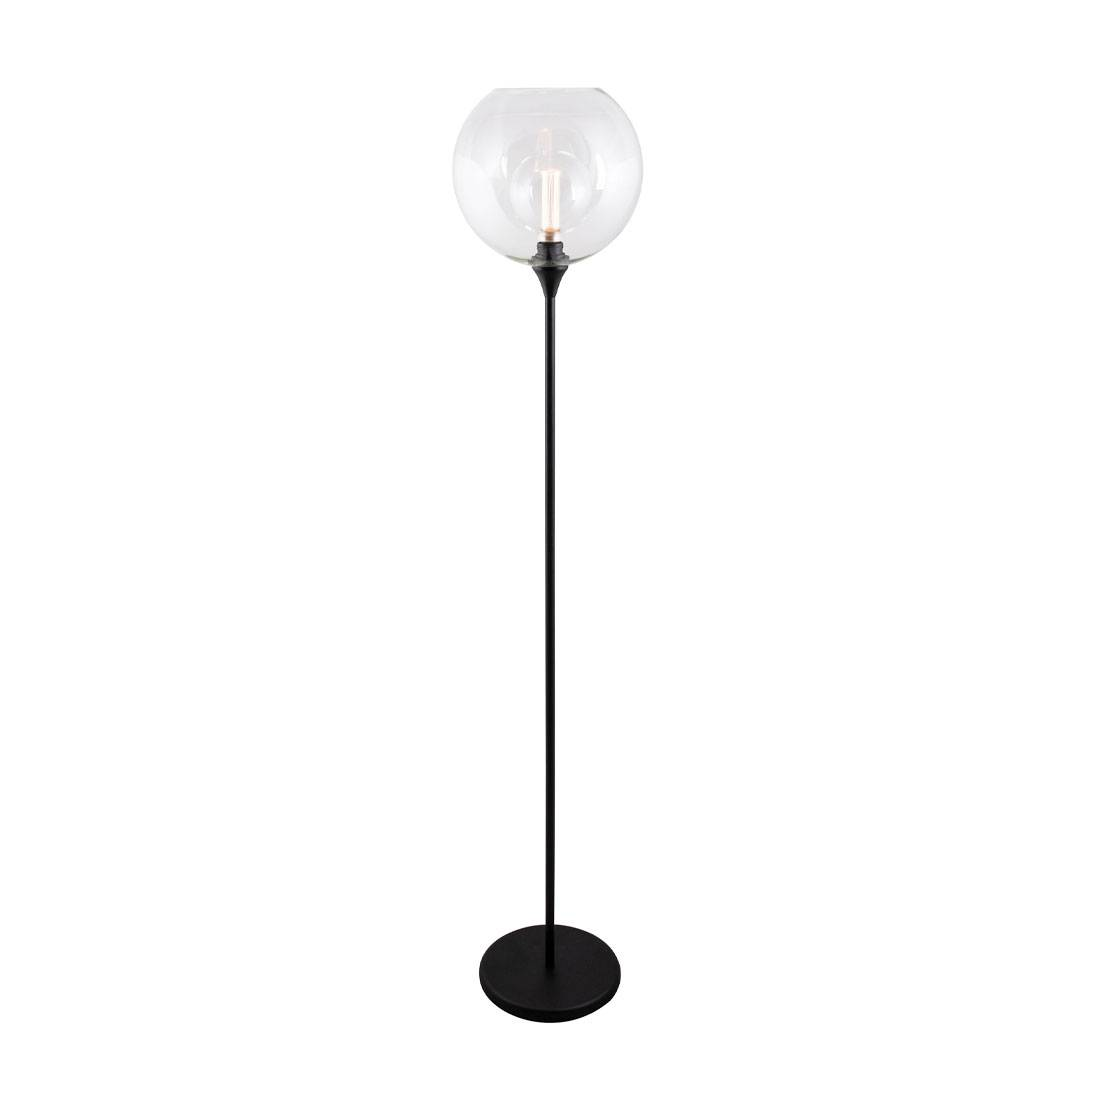 Globen Lighting Bowl Gulvlampa Klar 150cm